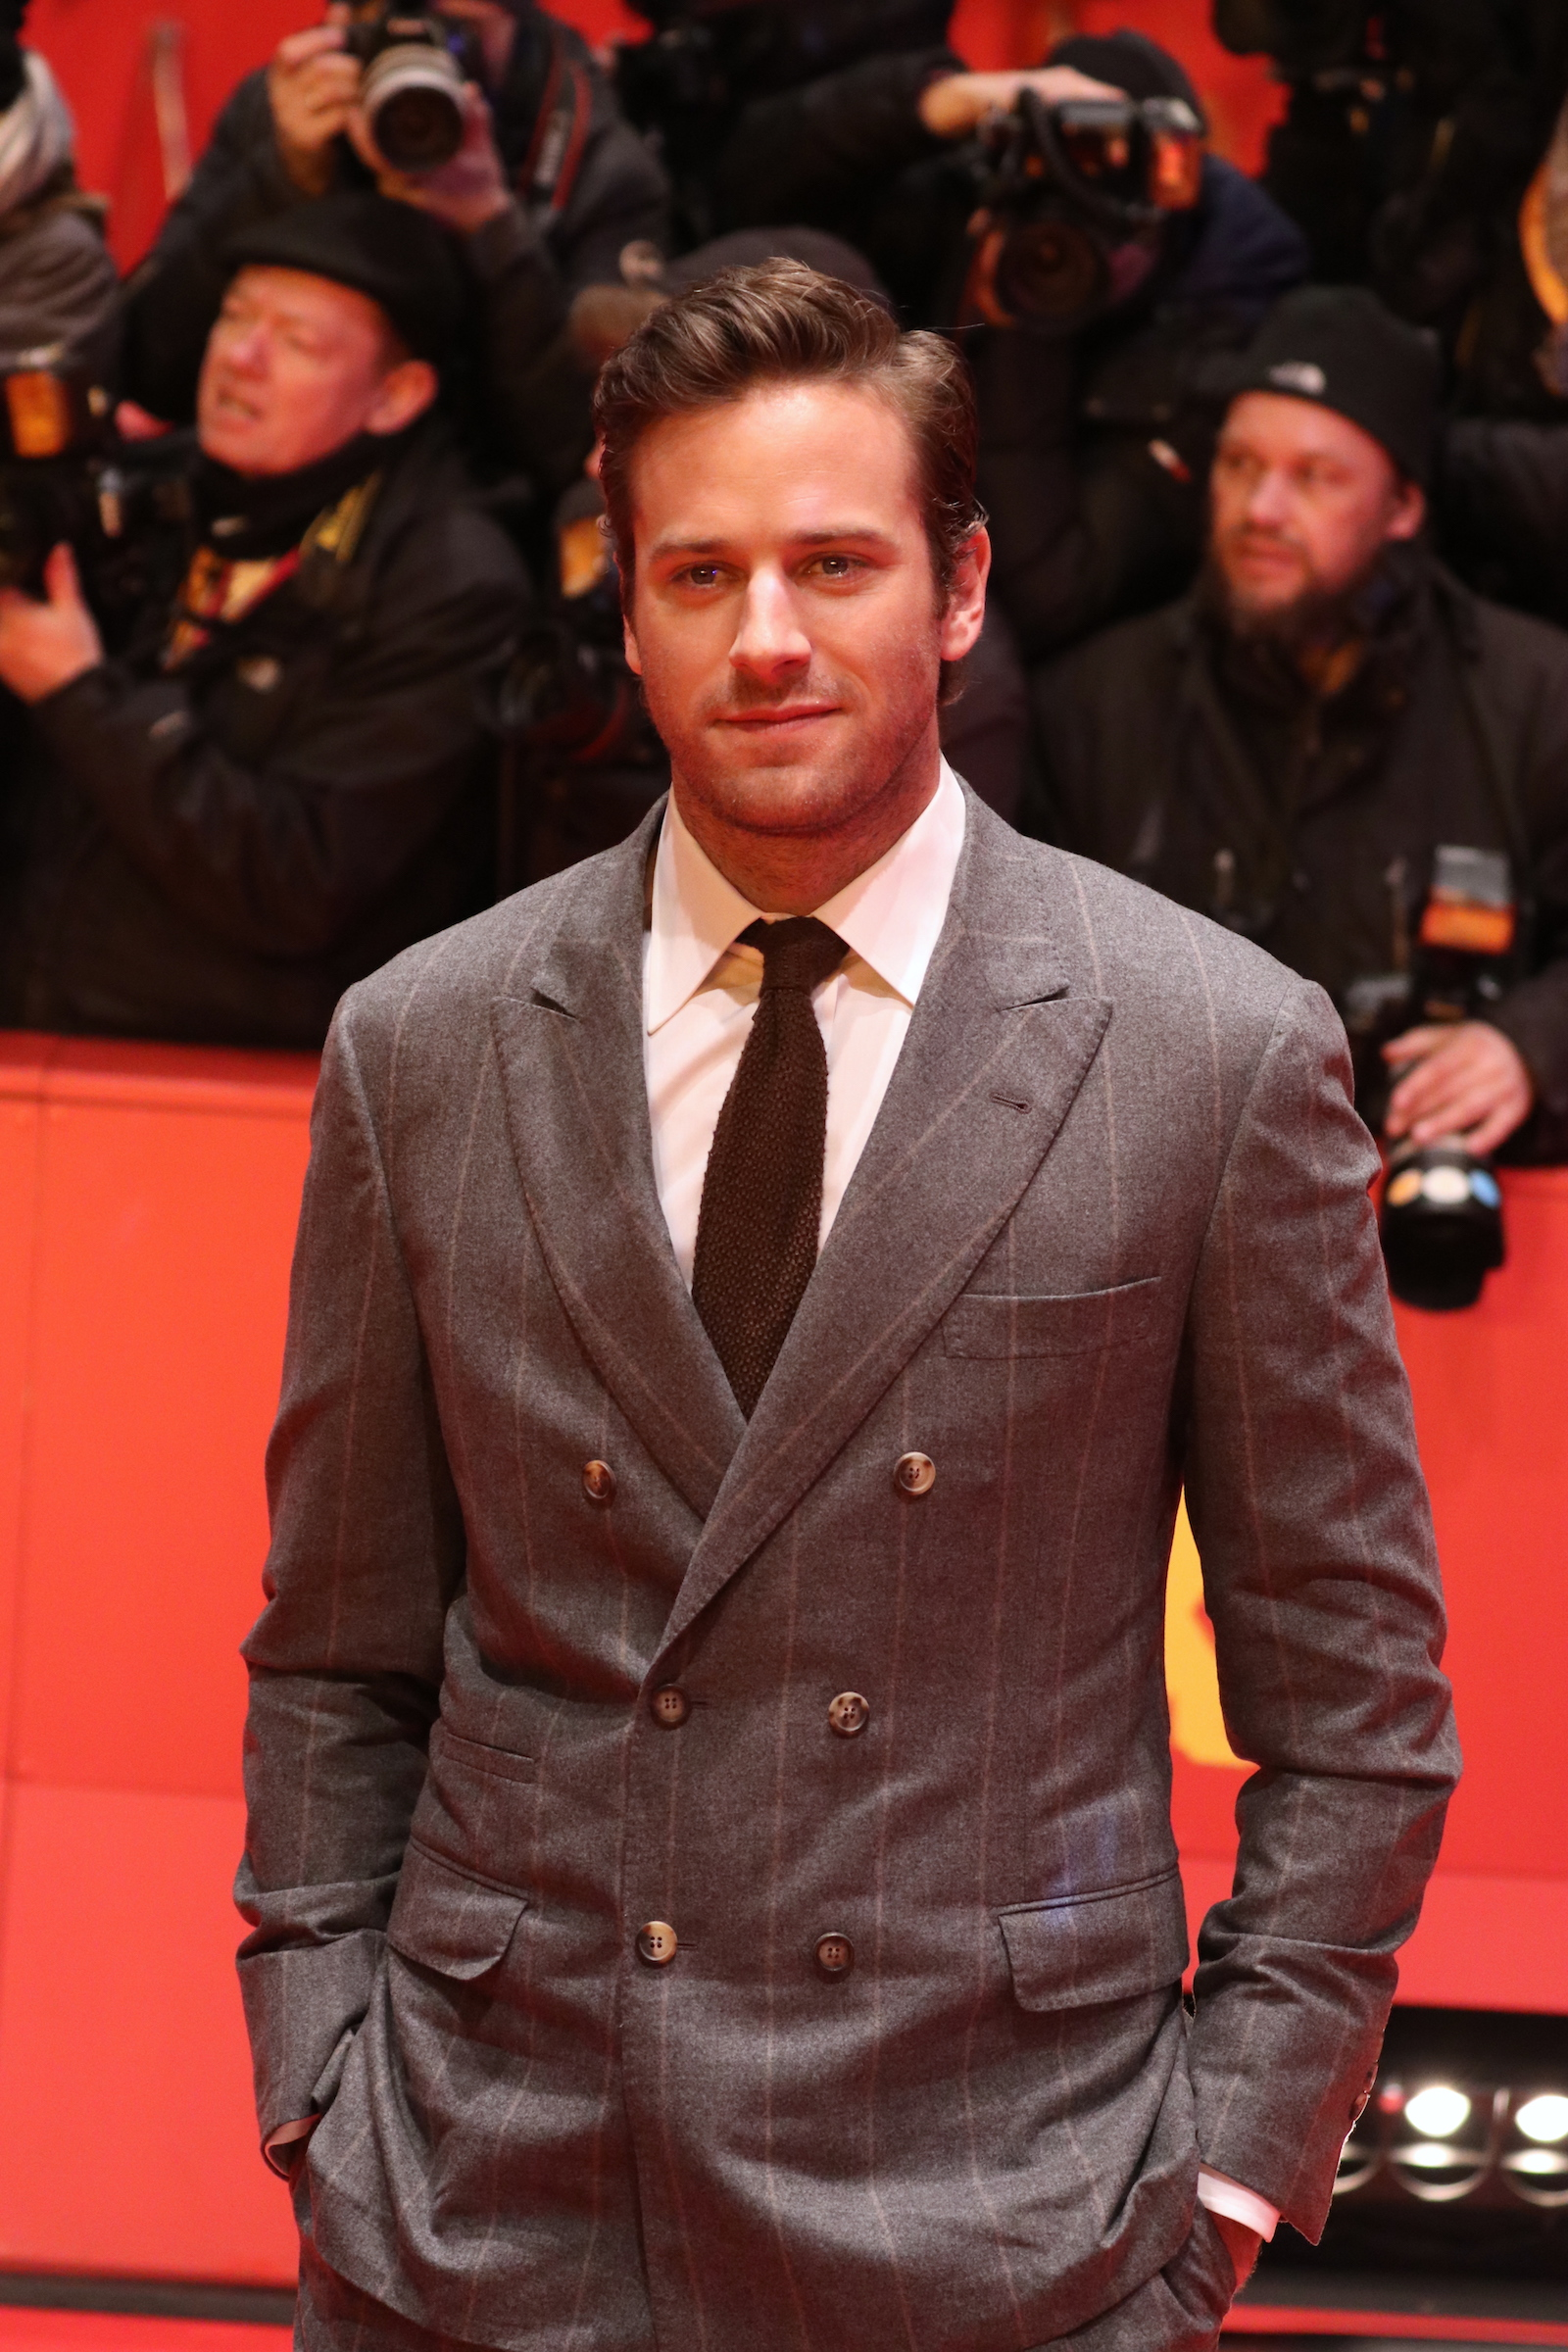 Berlino 2017: uno scatto di Armie Hammer sul red carpet di Final Portrait